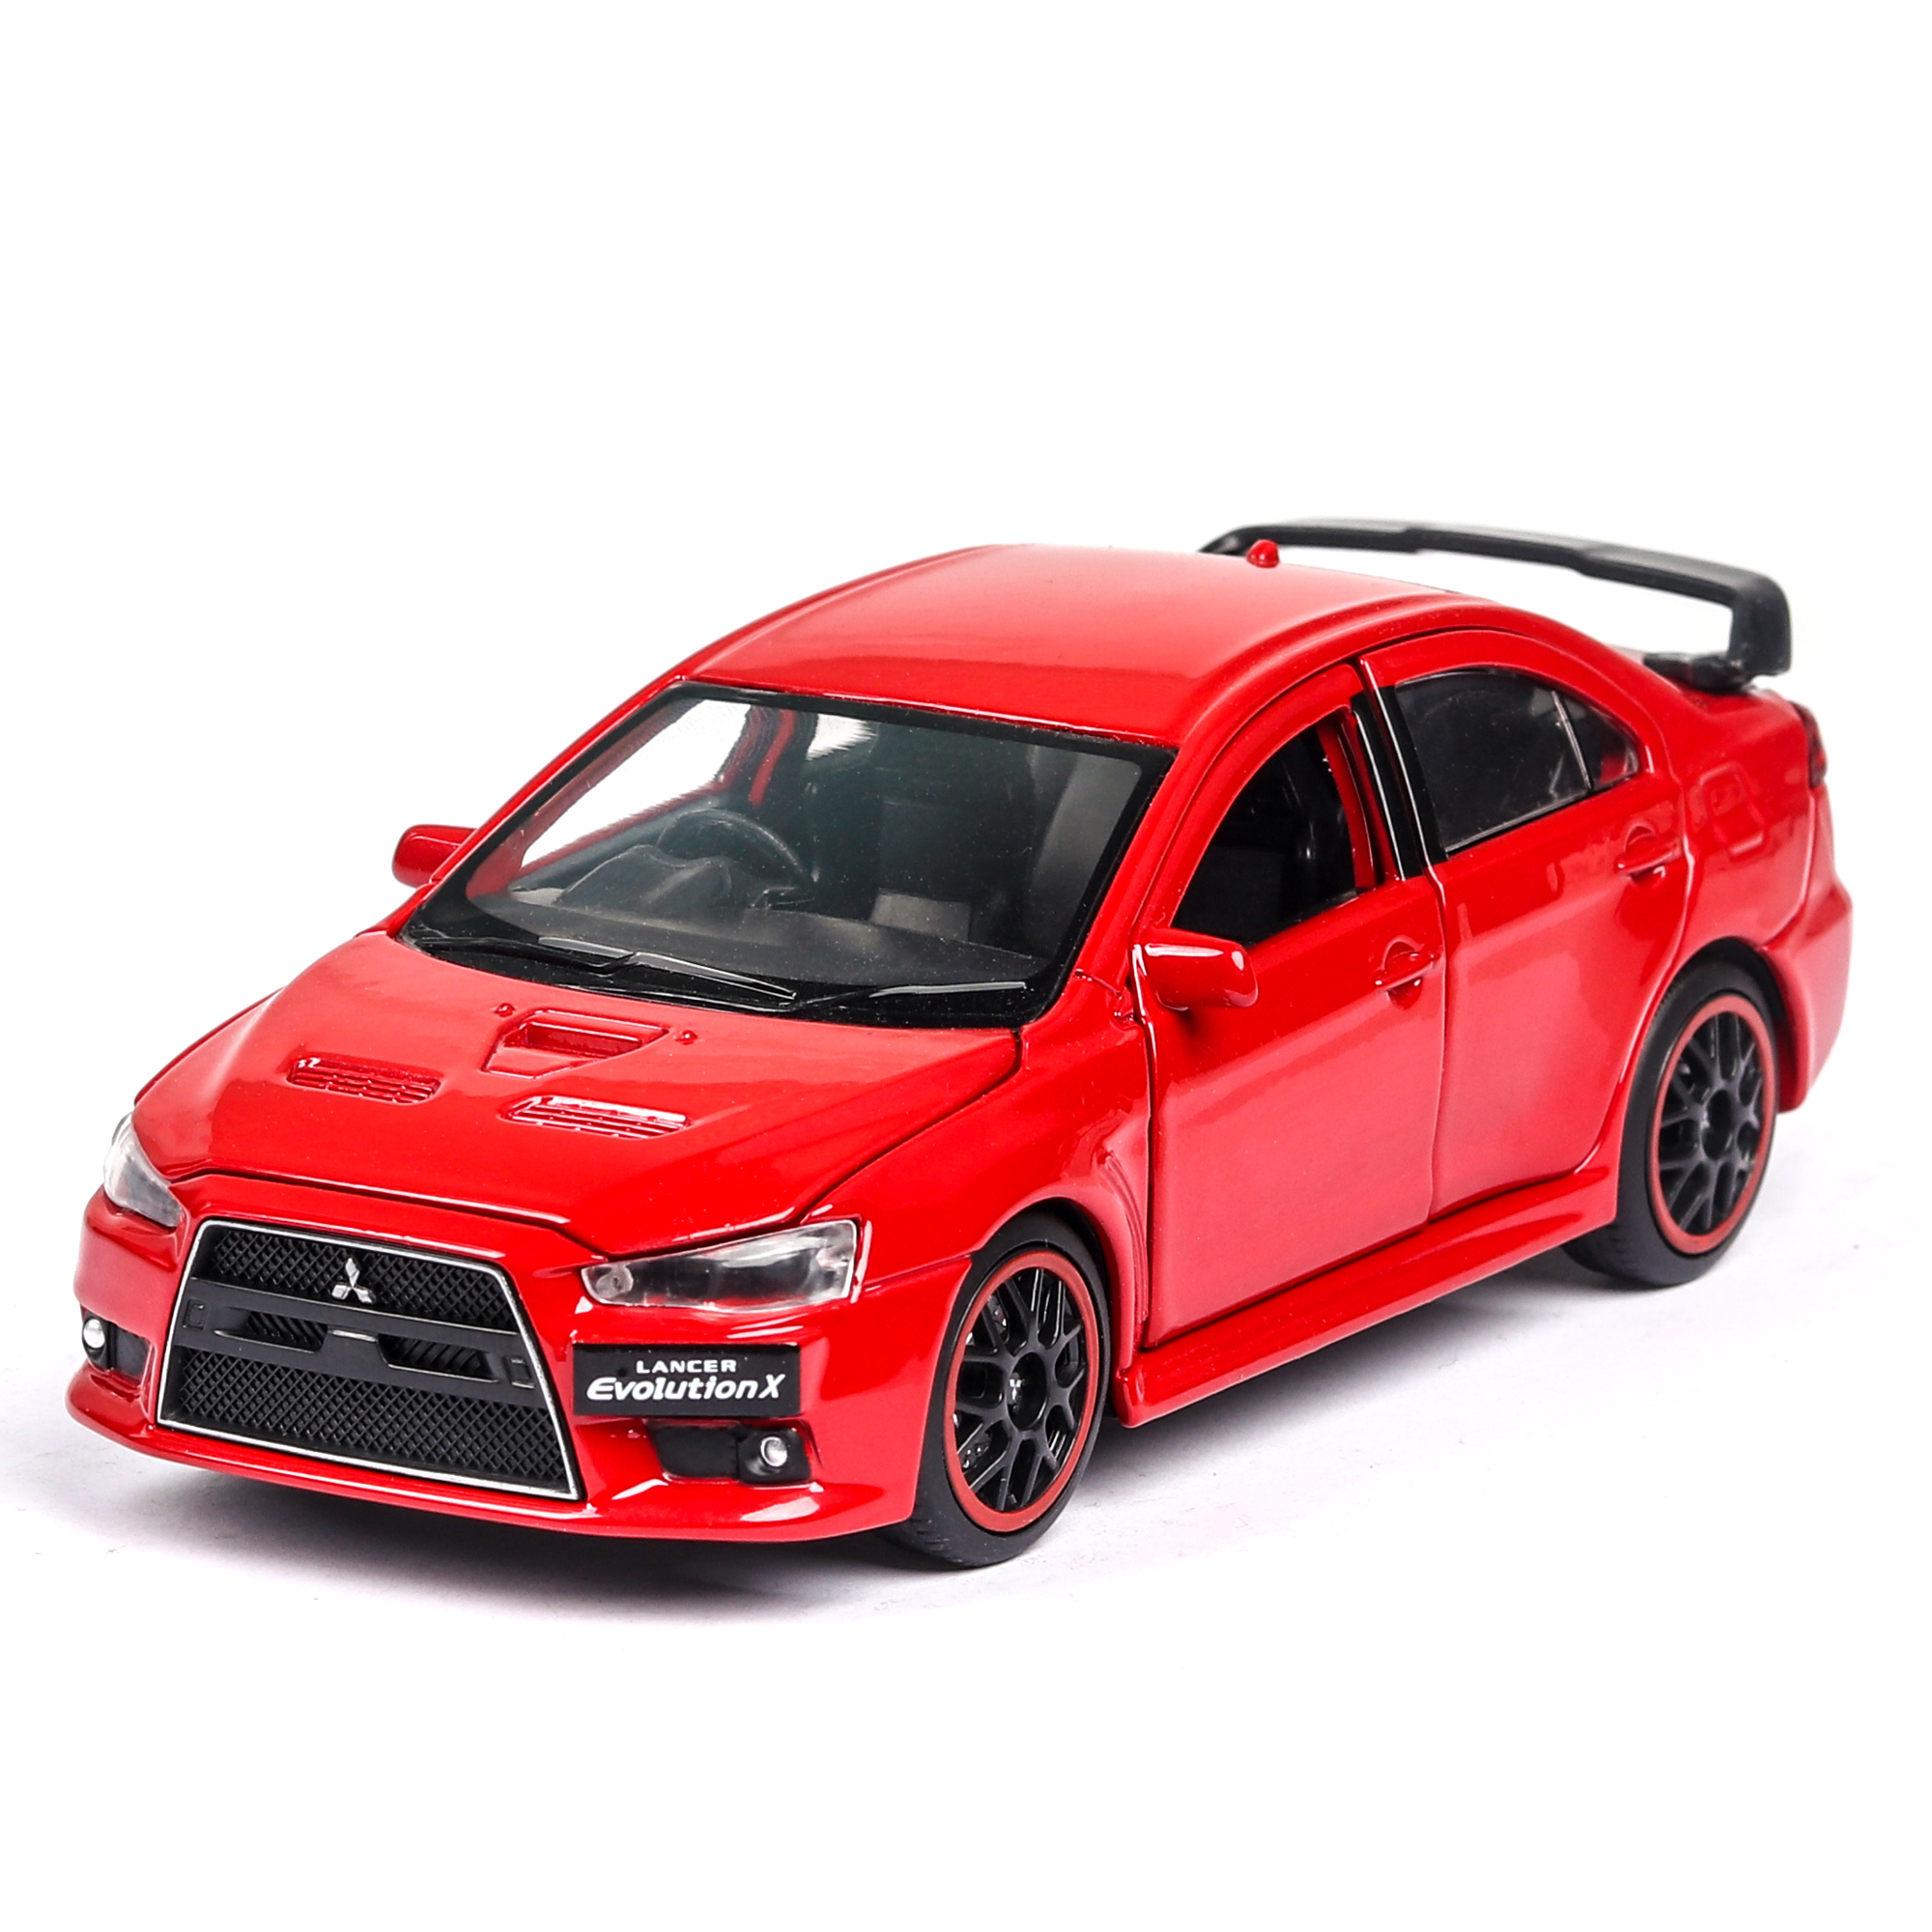 1:32 New Limited Sell Mitsubishi EVO Alloy Sports Car Model Super Racing Diecast Toy Vehicl Sound And Light For Kids Car Toys